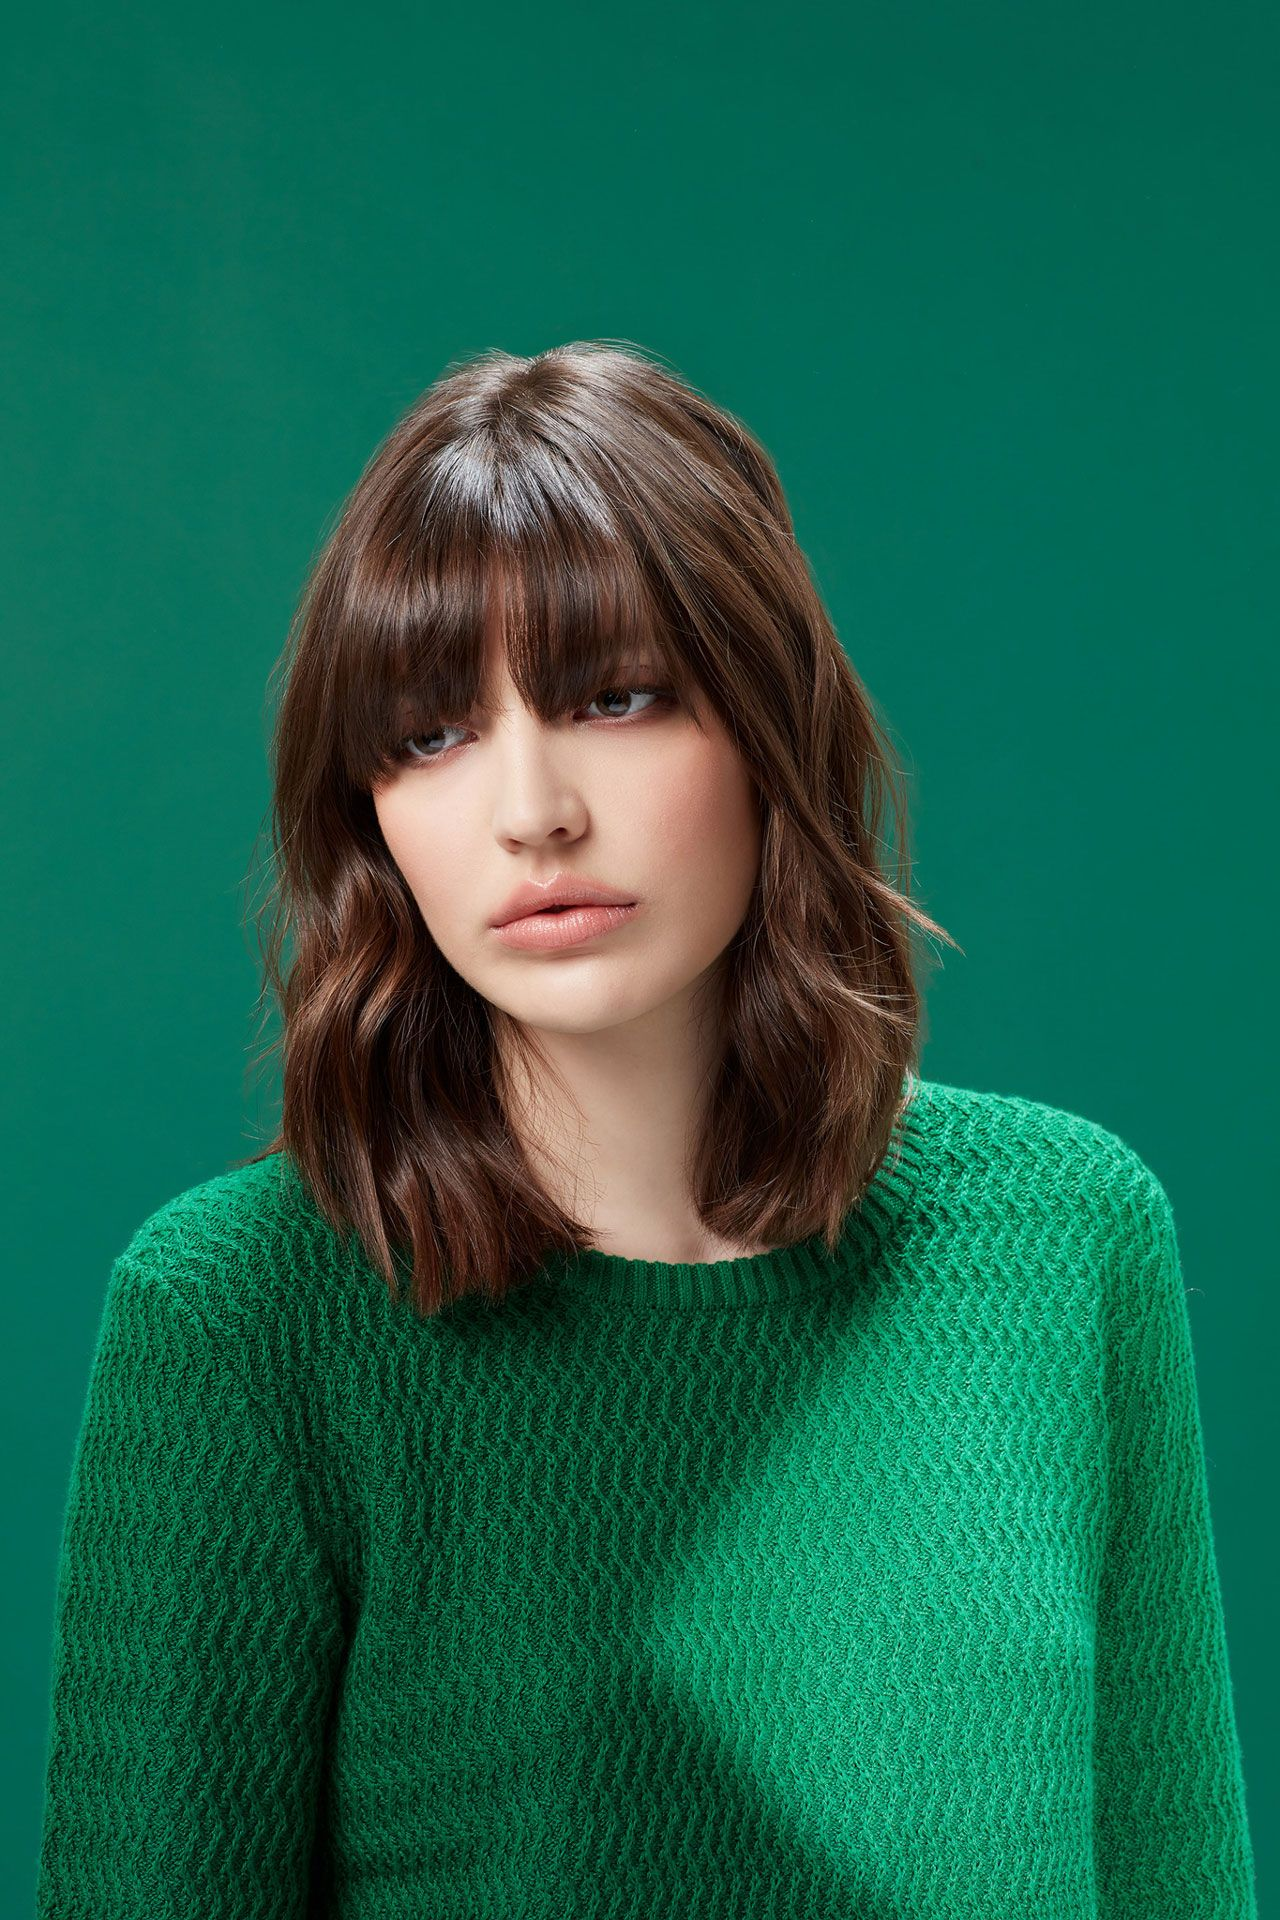 portrait of white woman looking down brown wavy hair down to shoulder wearing textured green sweater on green background by Simon Duhamel for creative project Light & Colours